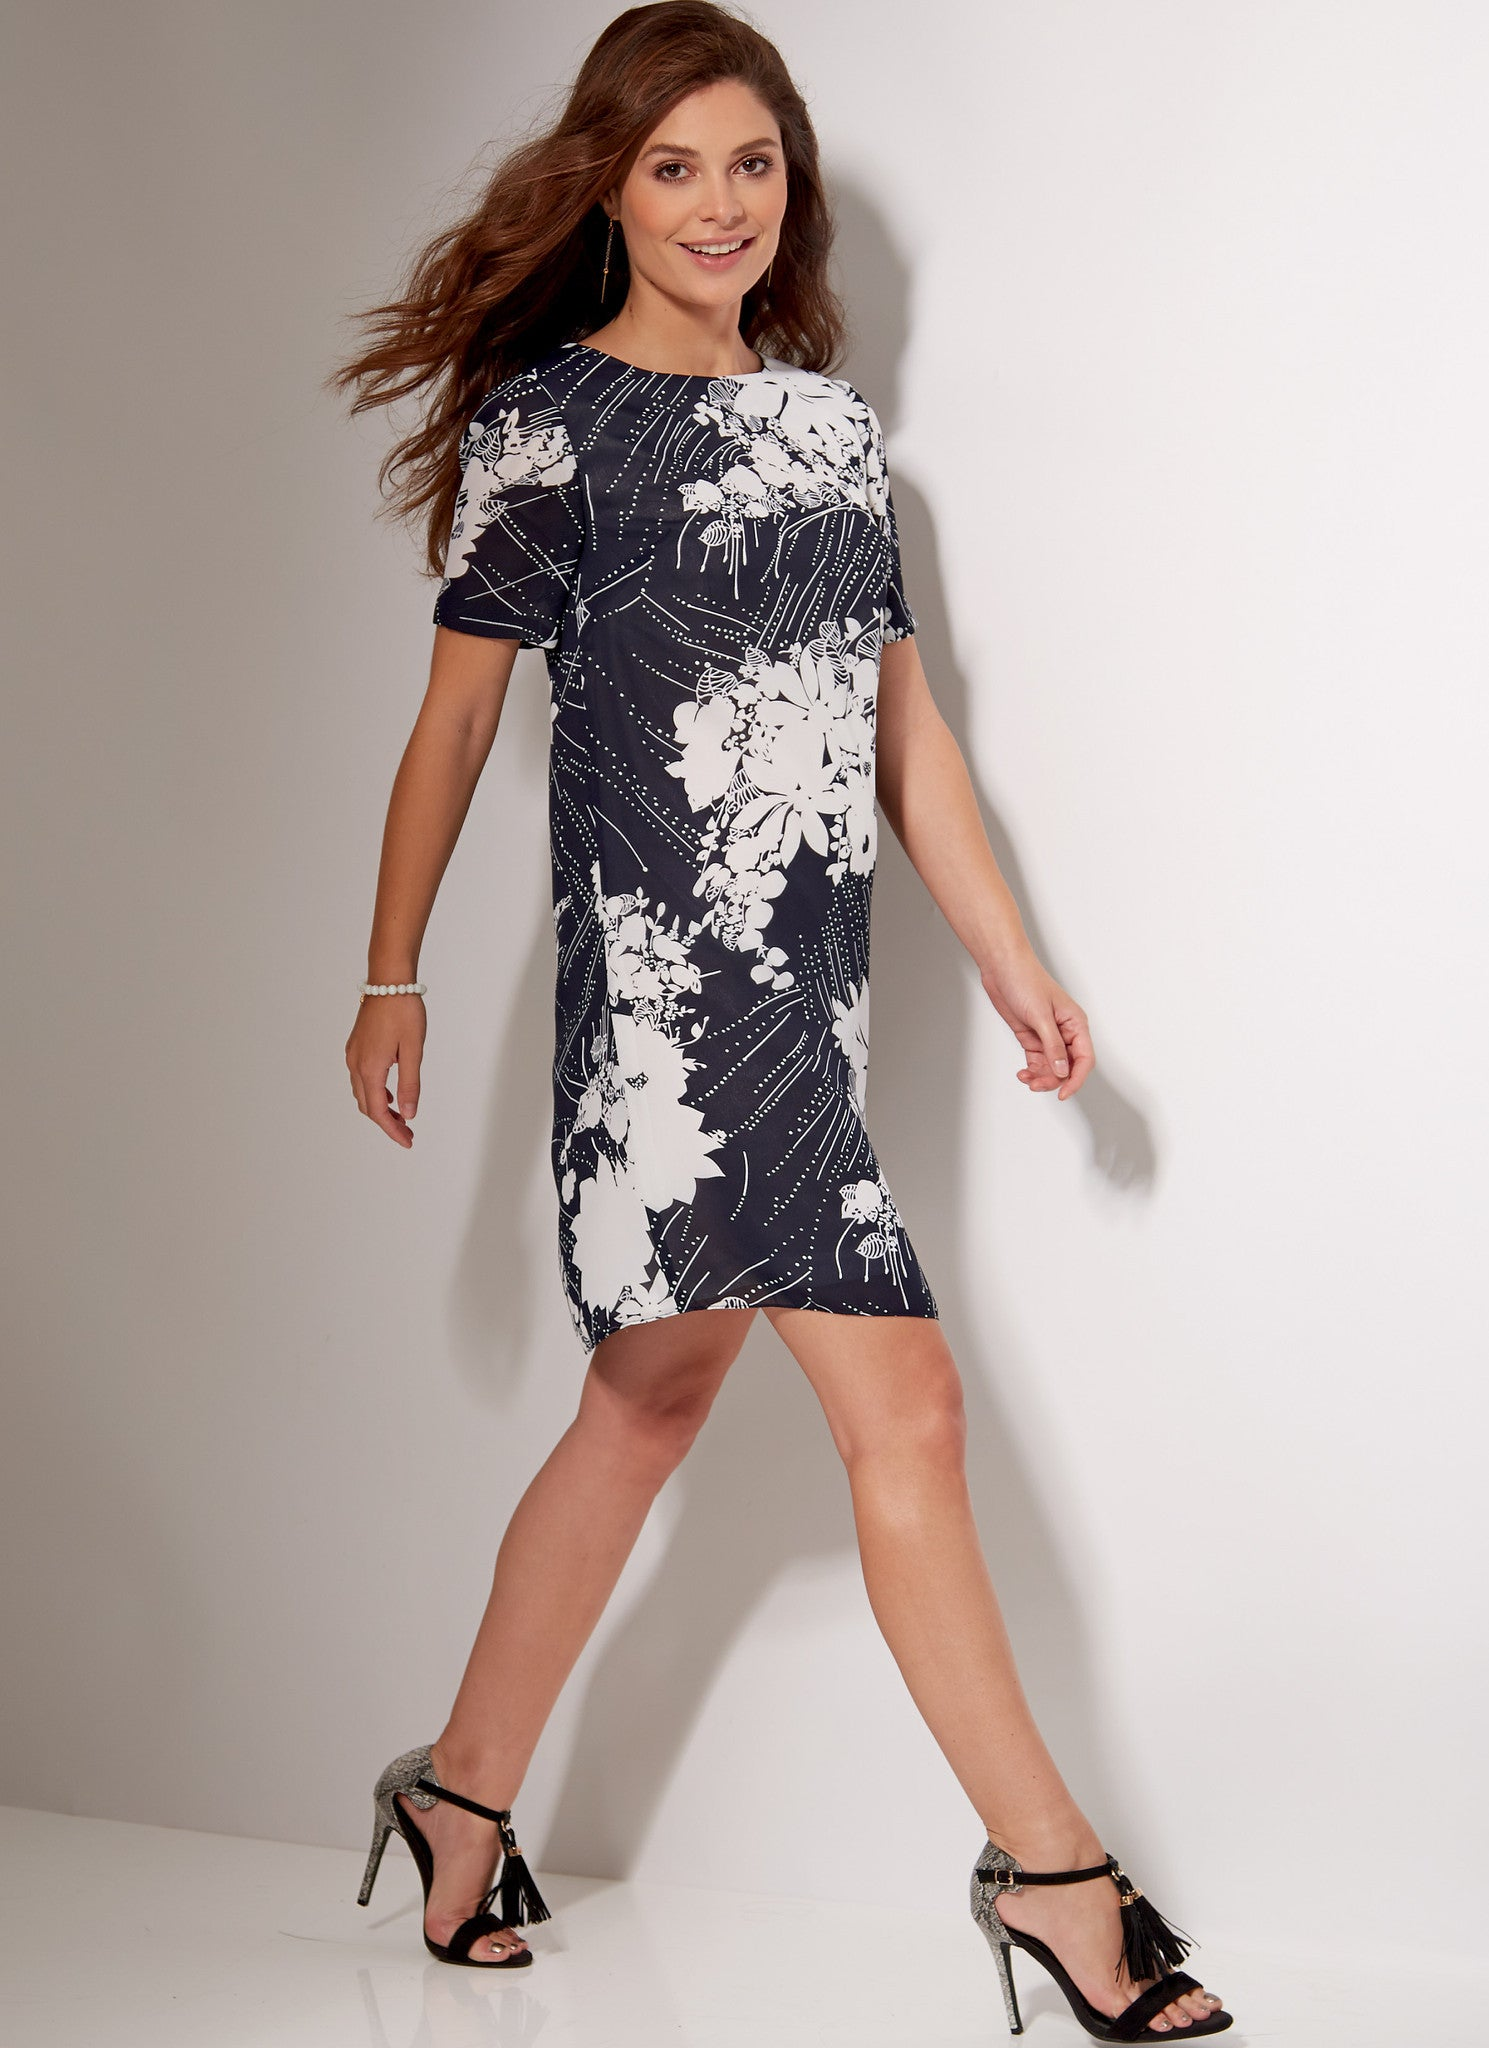 M7533 Misses'/Women's Fitted, Sheath Dresses